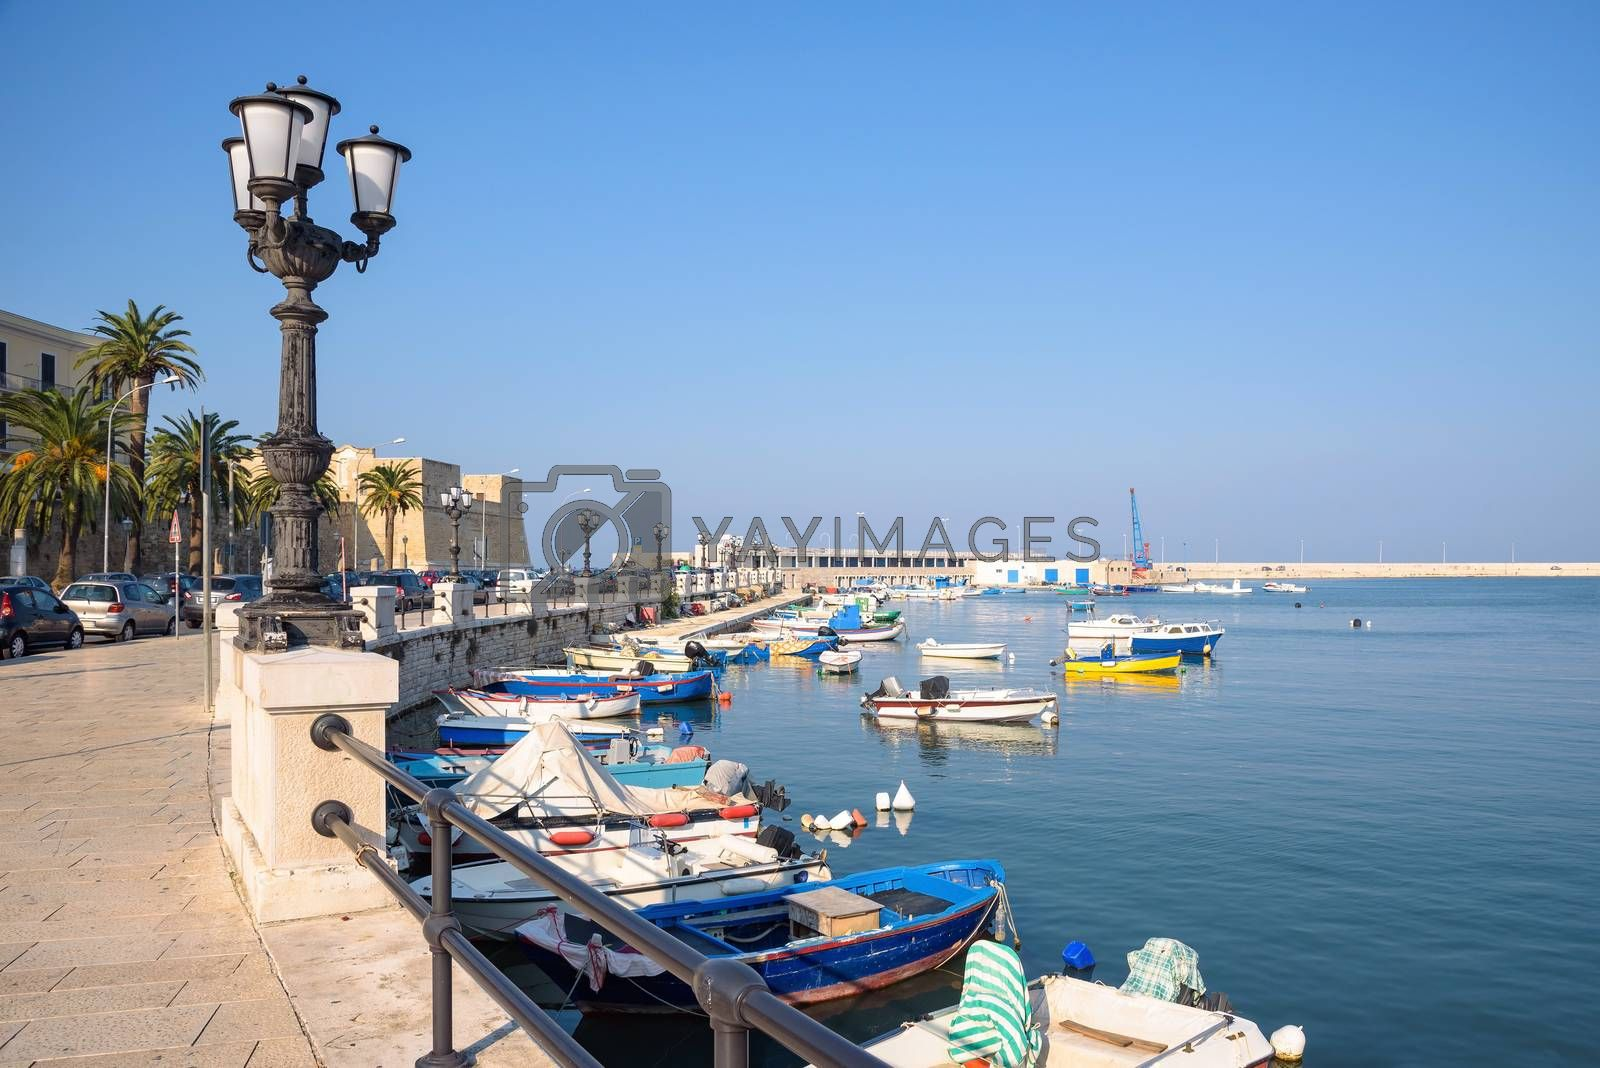 View of the port of Bari, Apulia, Italy